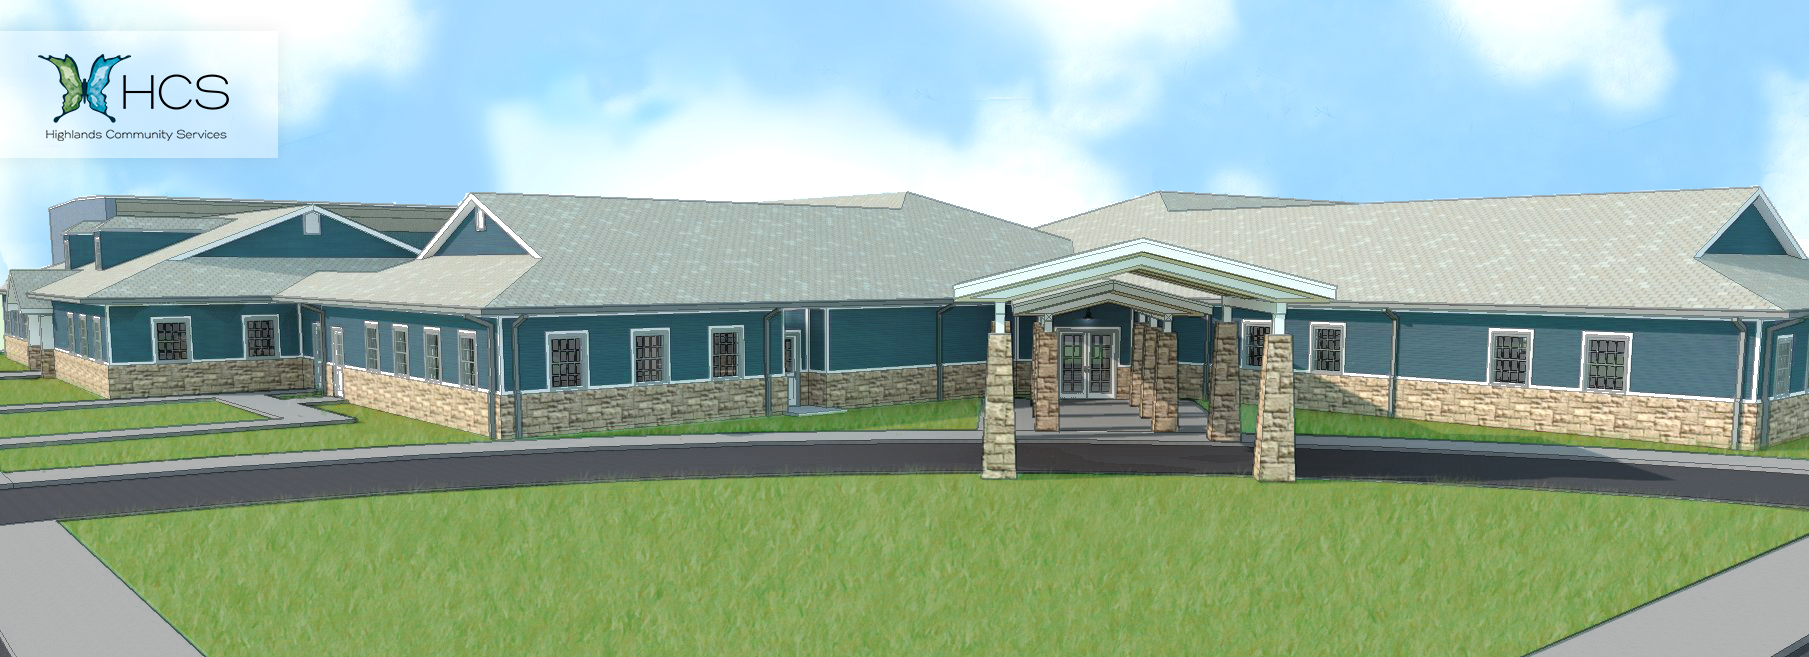 HCS Children's Campus - 2016-04 Rendering